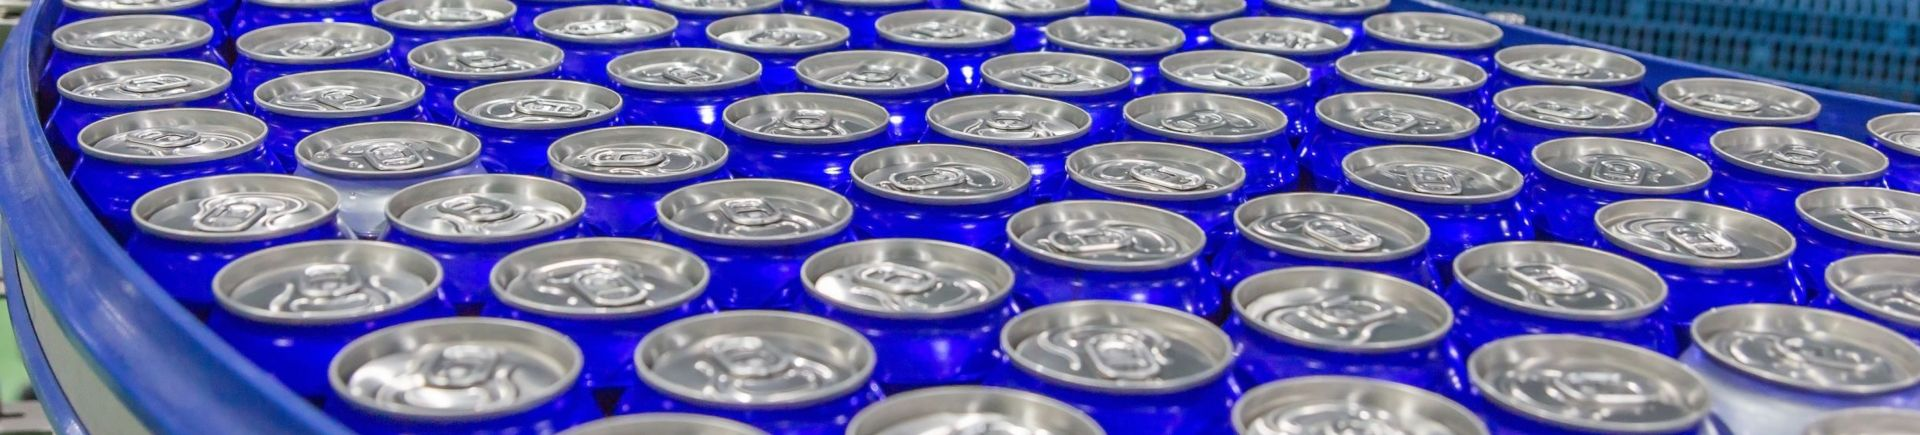 food and beverage cans